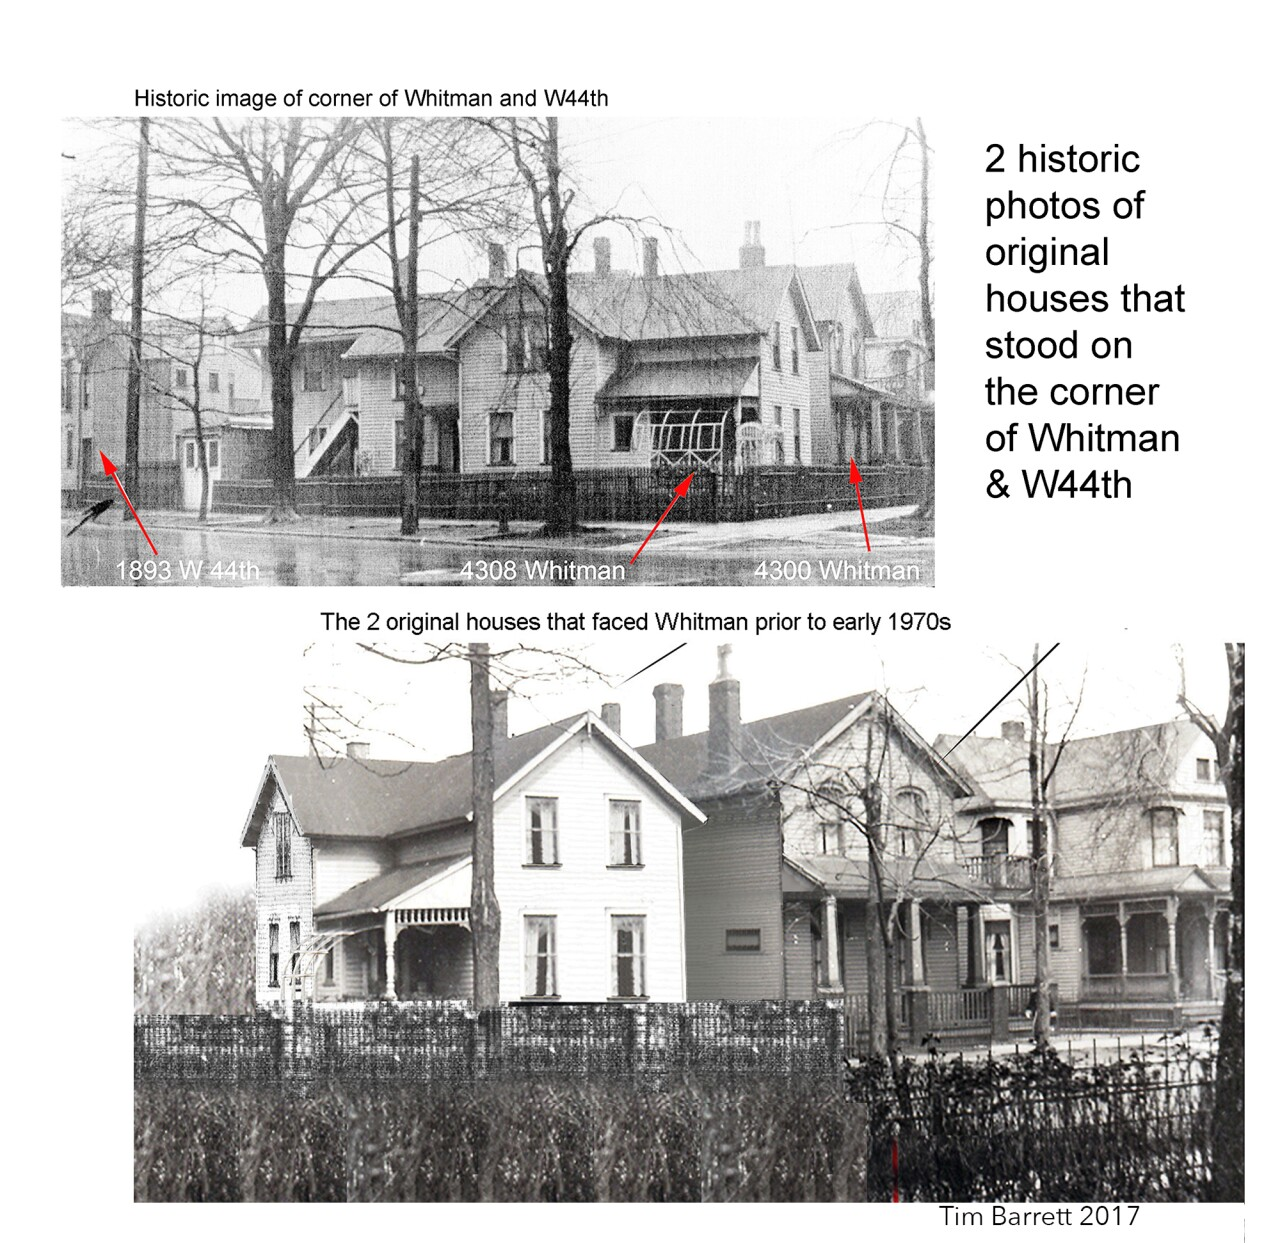 s_Whitman_&_W44th_Historic_image_of_houses_that_once_stood_there_Tim_Barrett[1].jpg